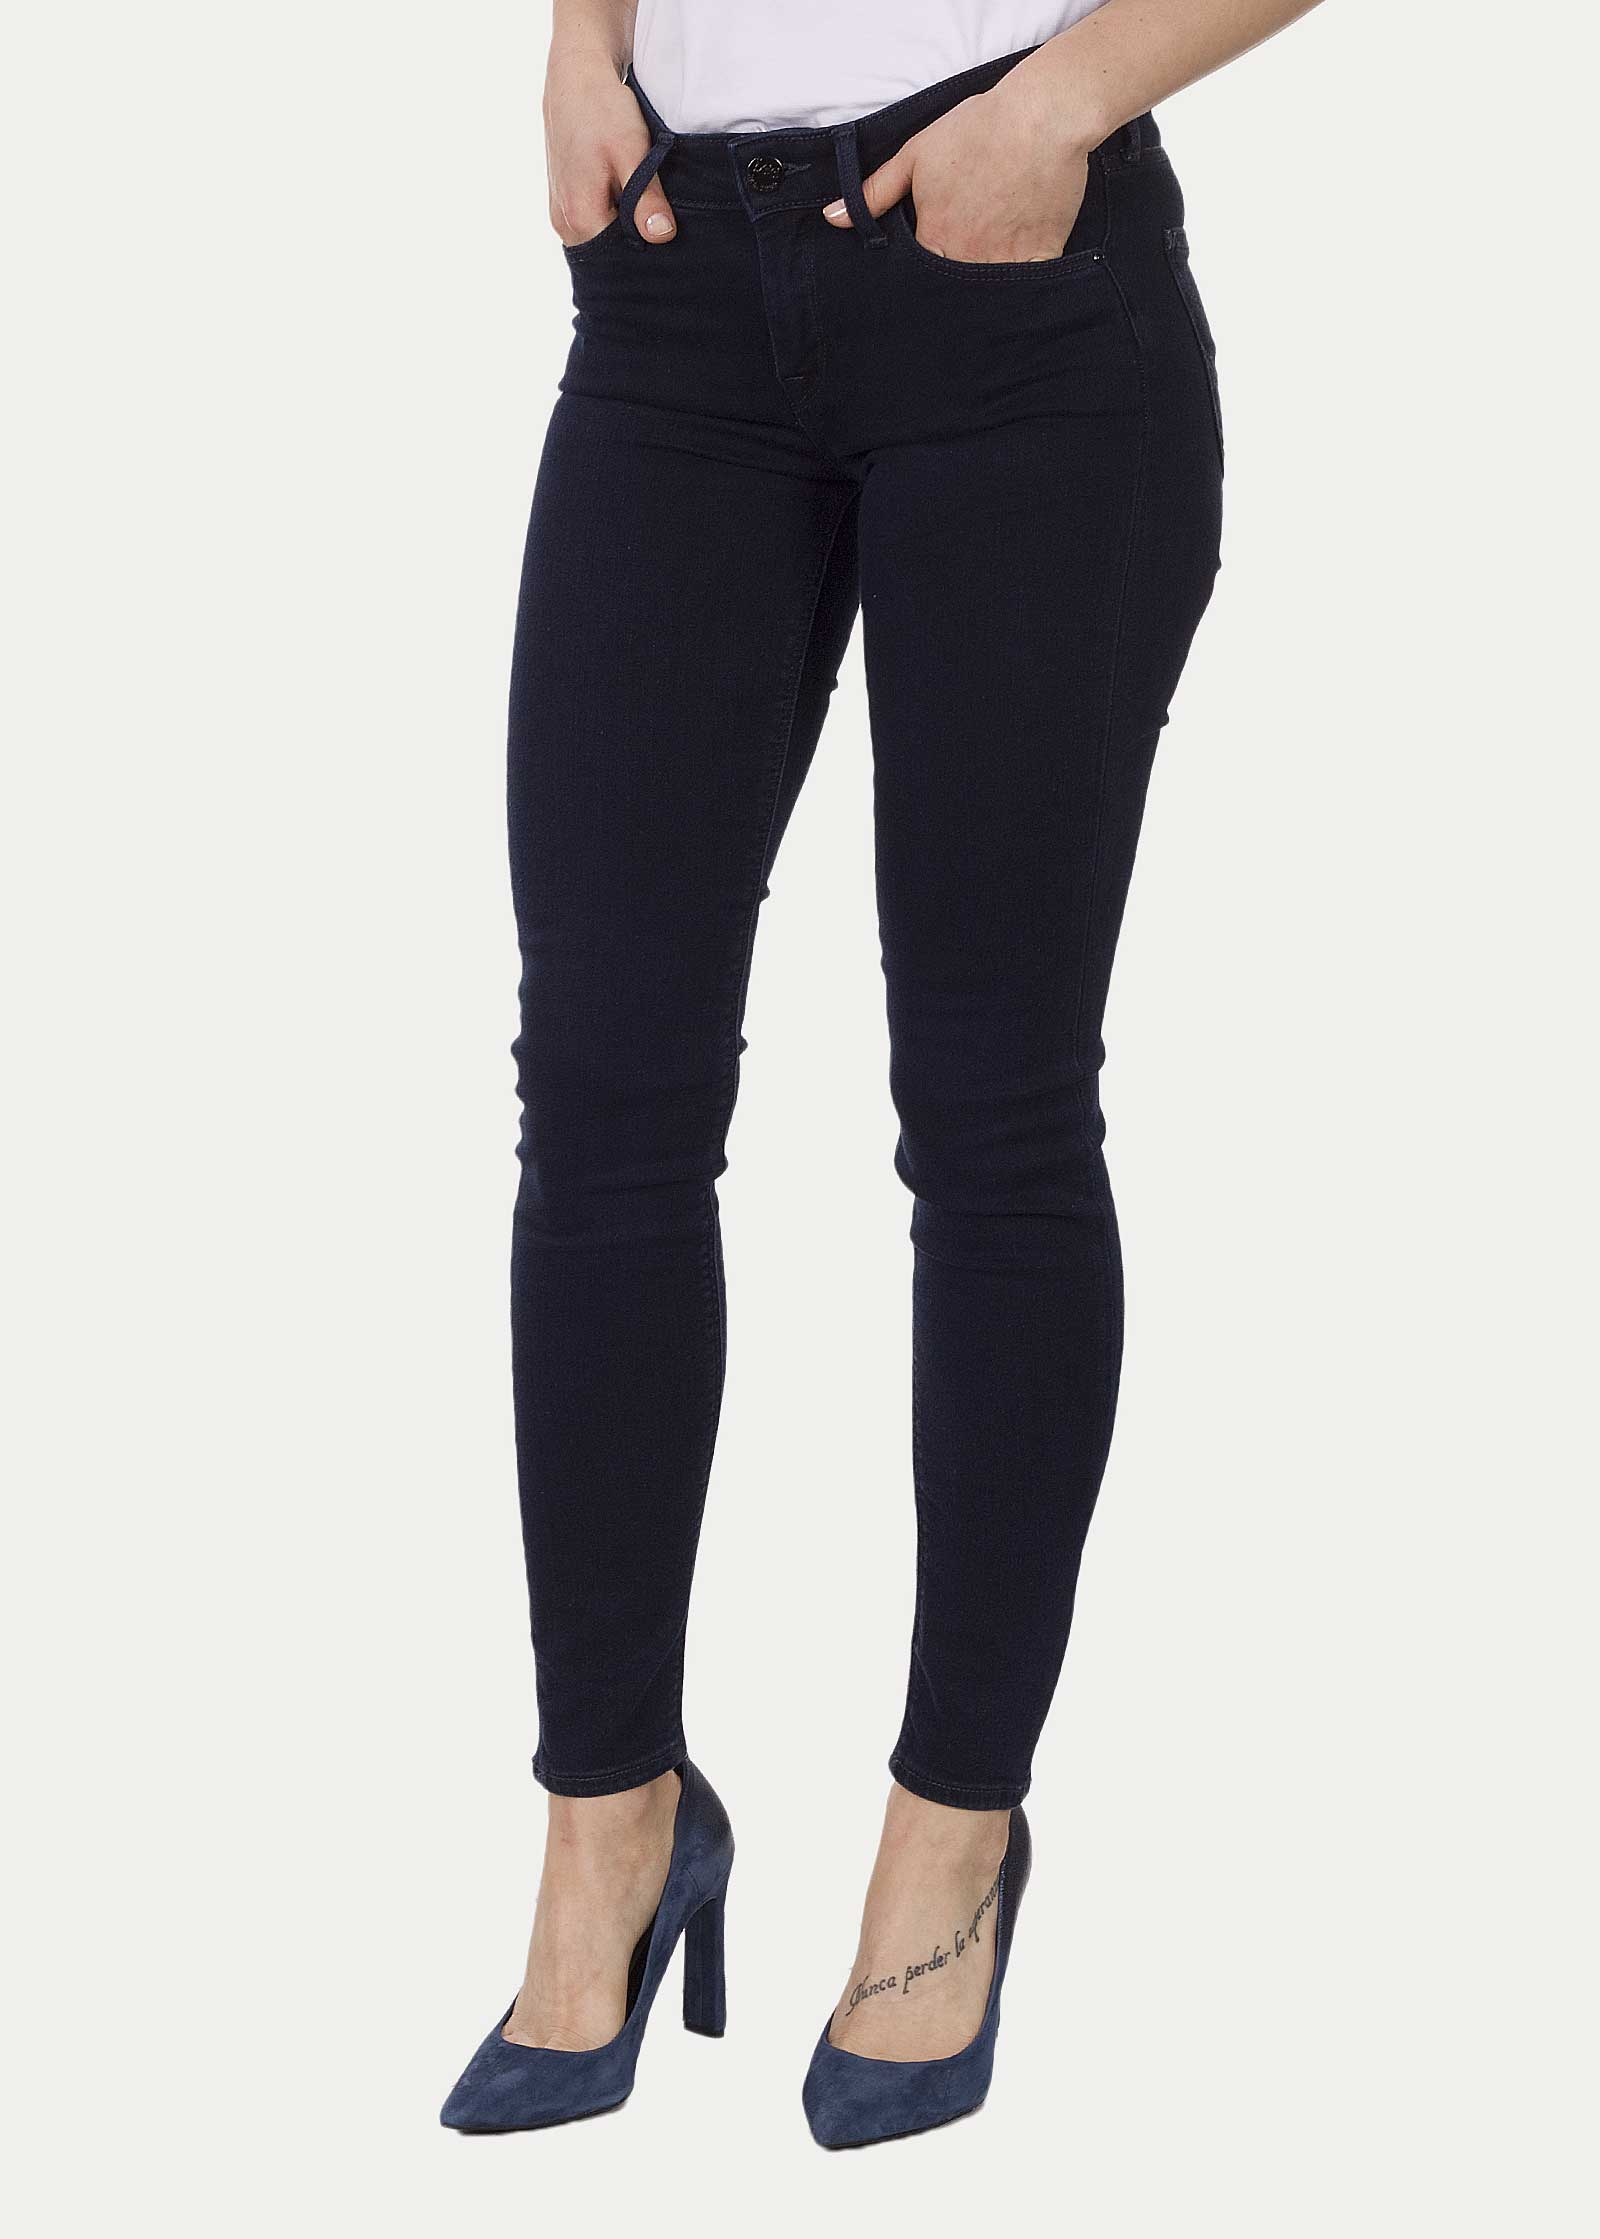 low priced special price for great deals Womans Jeans Lee Scarlett - Midnight